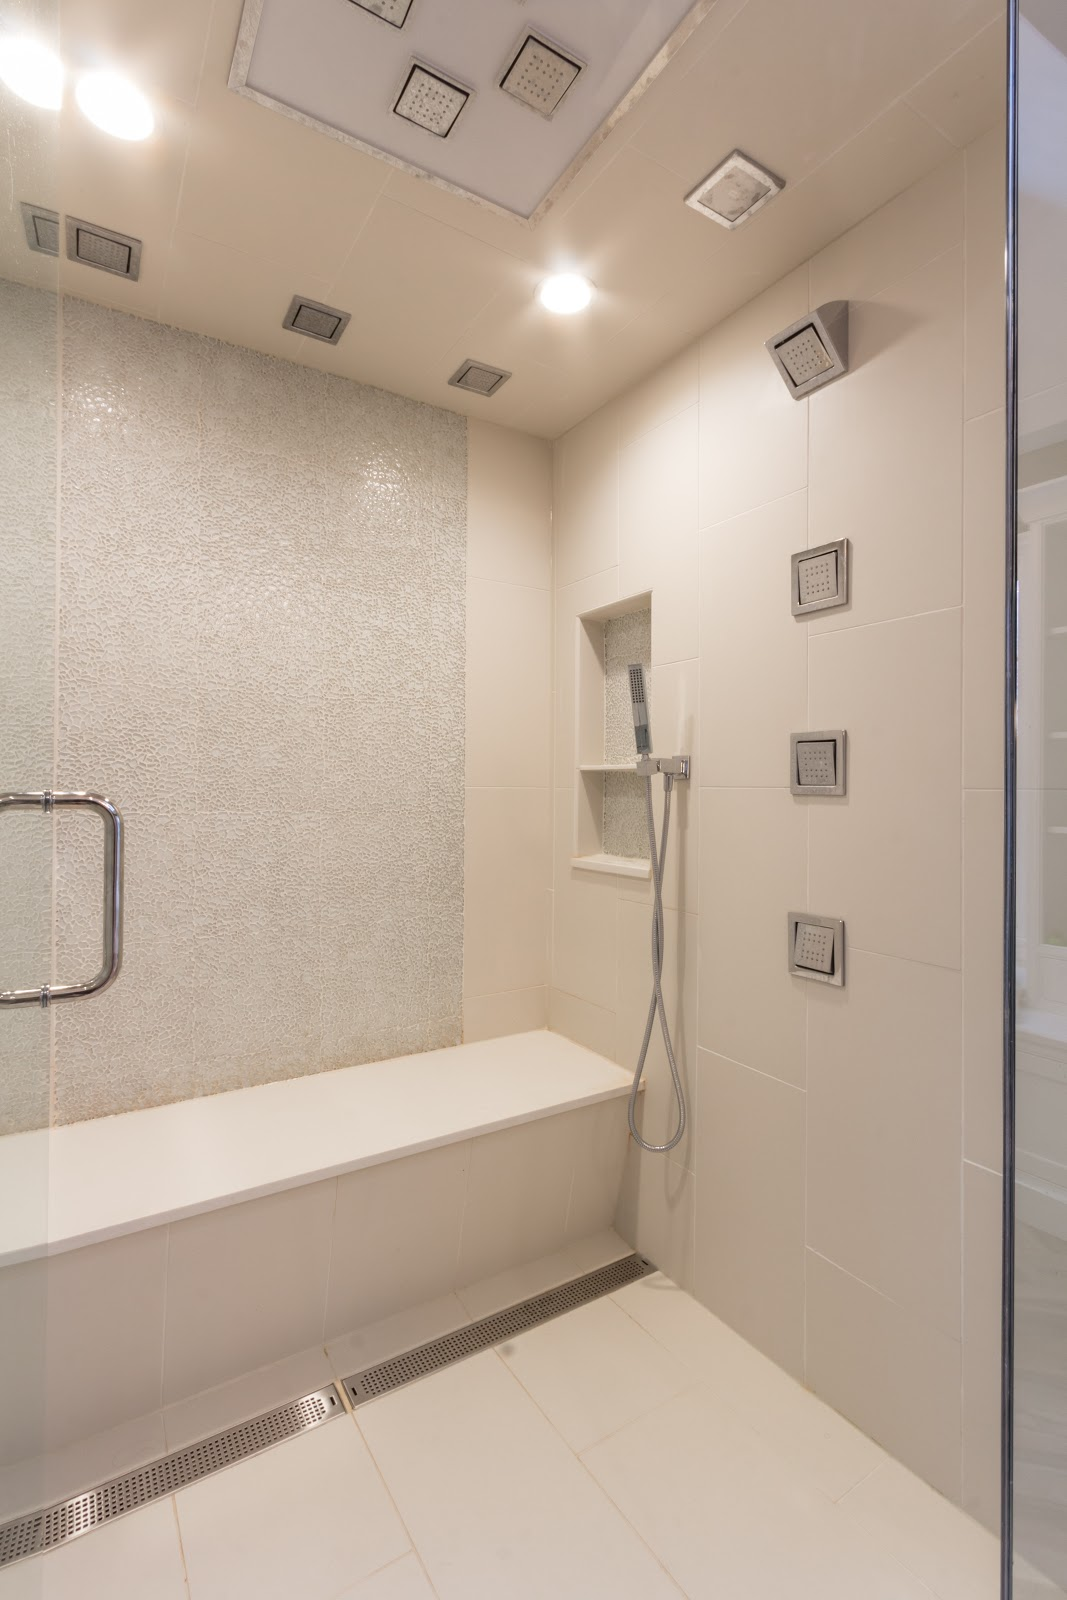 Large steam shower with wall and ceiling shower heads, lounge bench and vents.